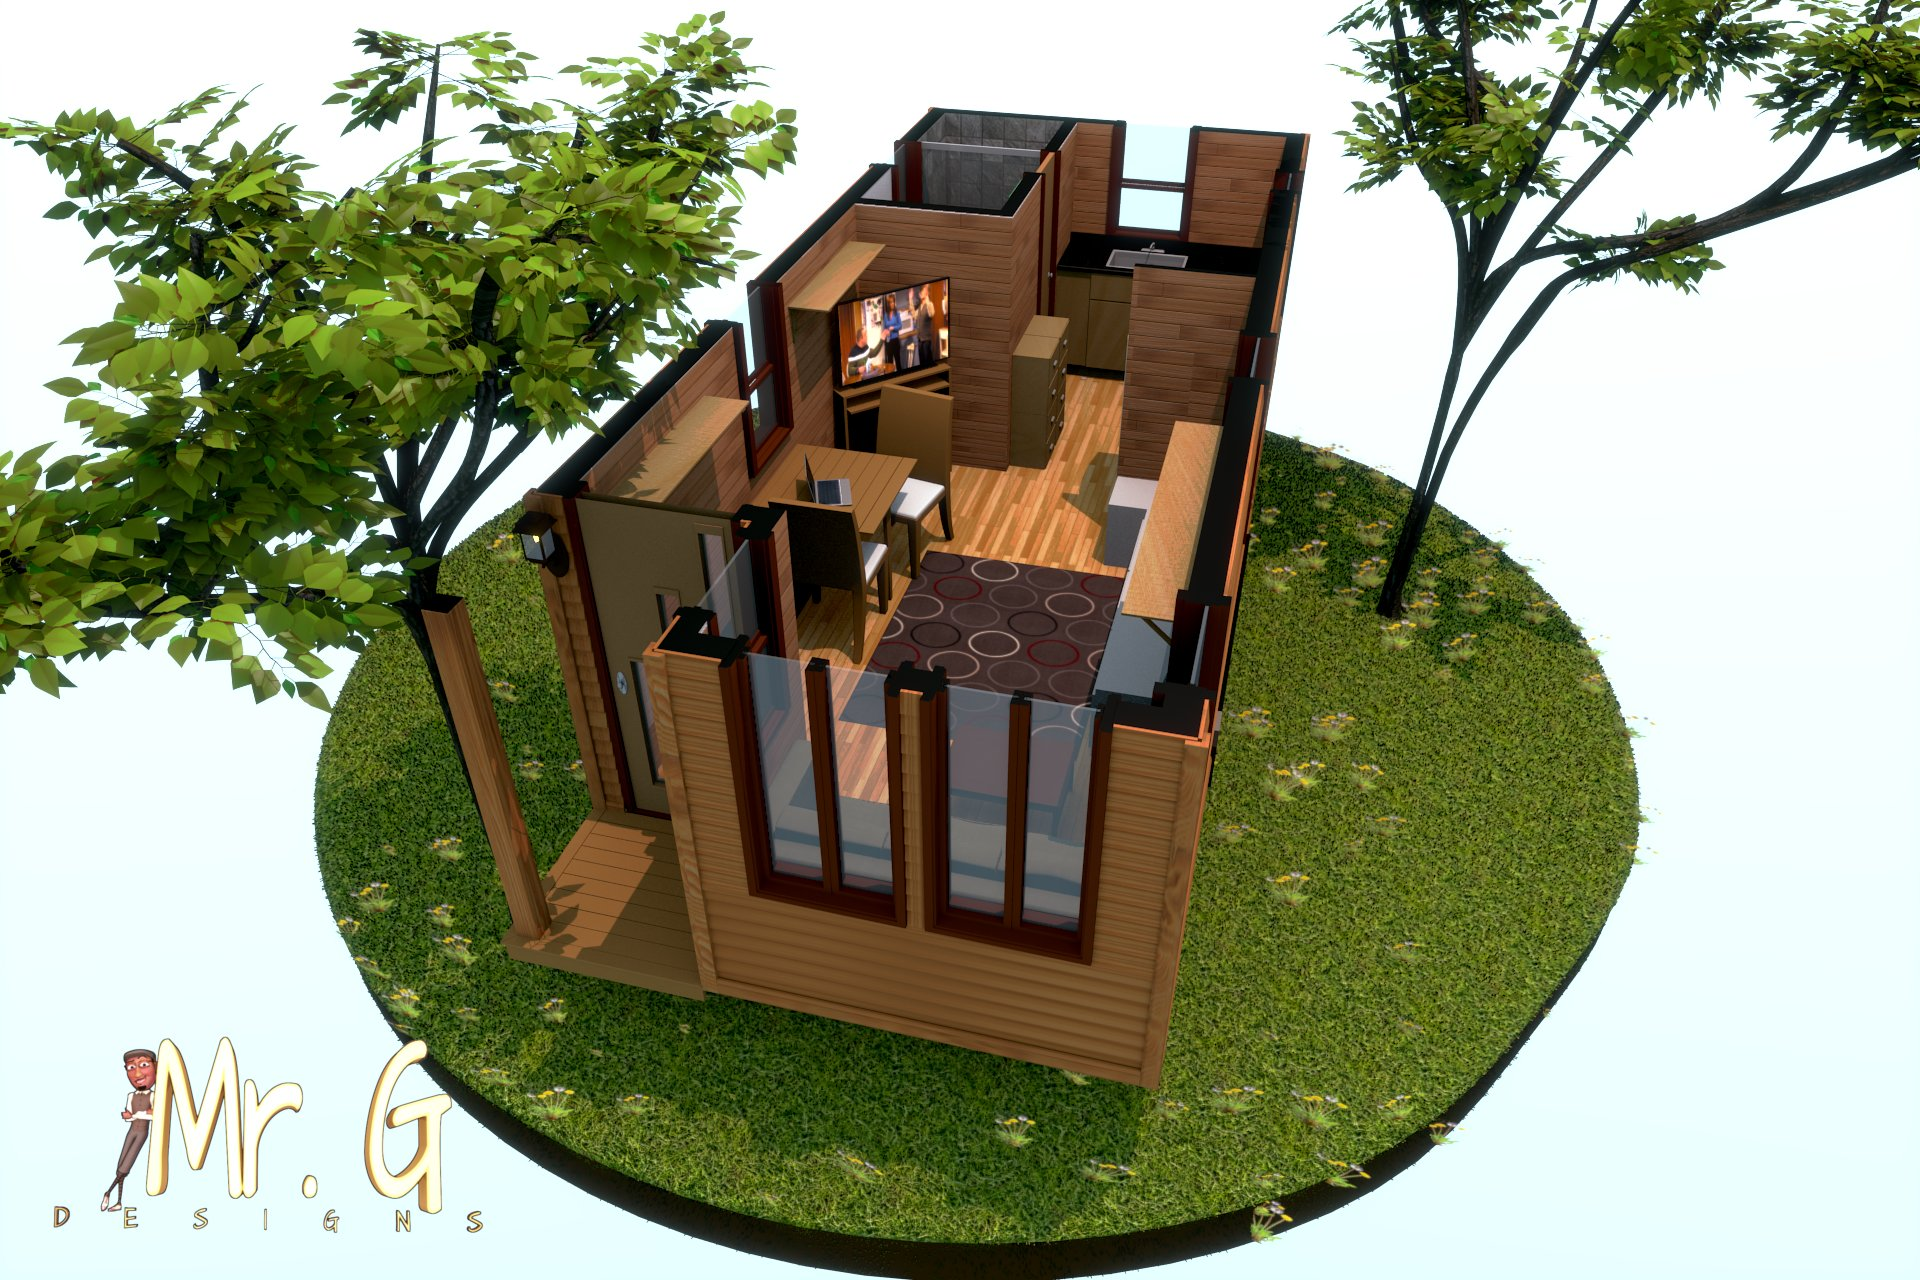 ArtStation Tiny House 3D Floor Plan Model Garrett S